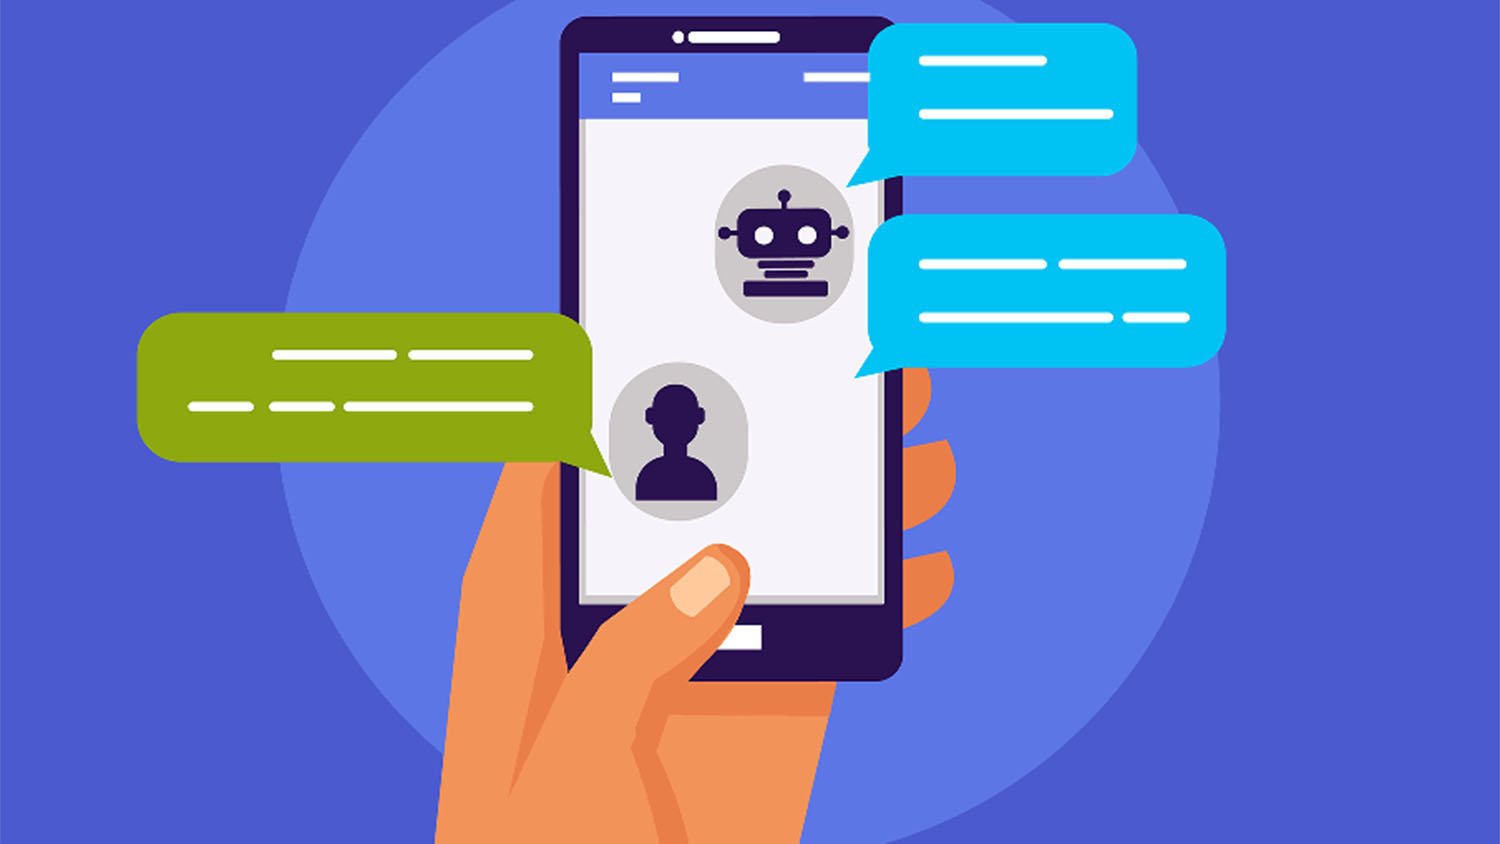 illustration of chatbot interaction